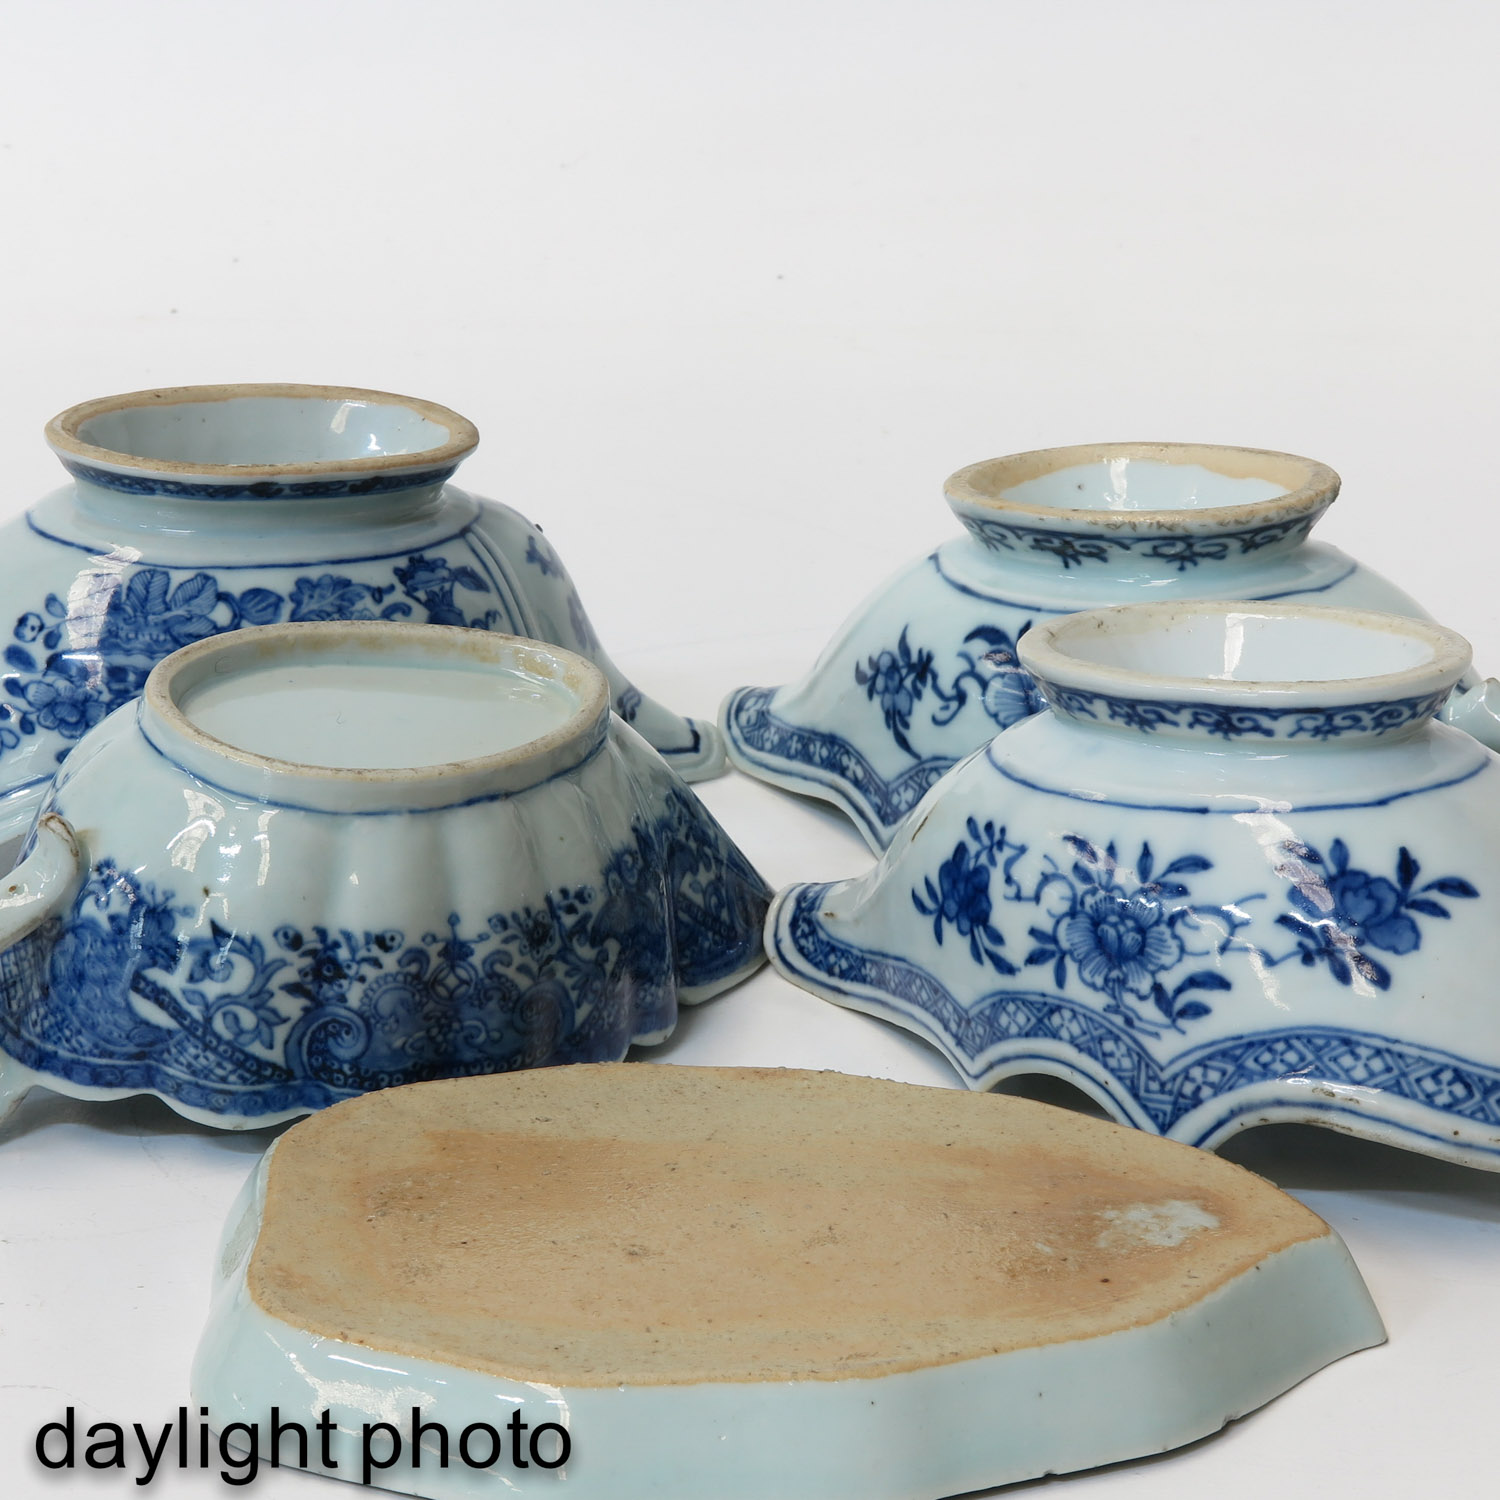 A Collection of Export Porcelain - Image 8 of 9